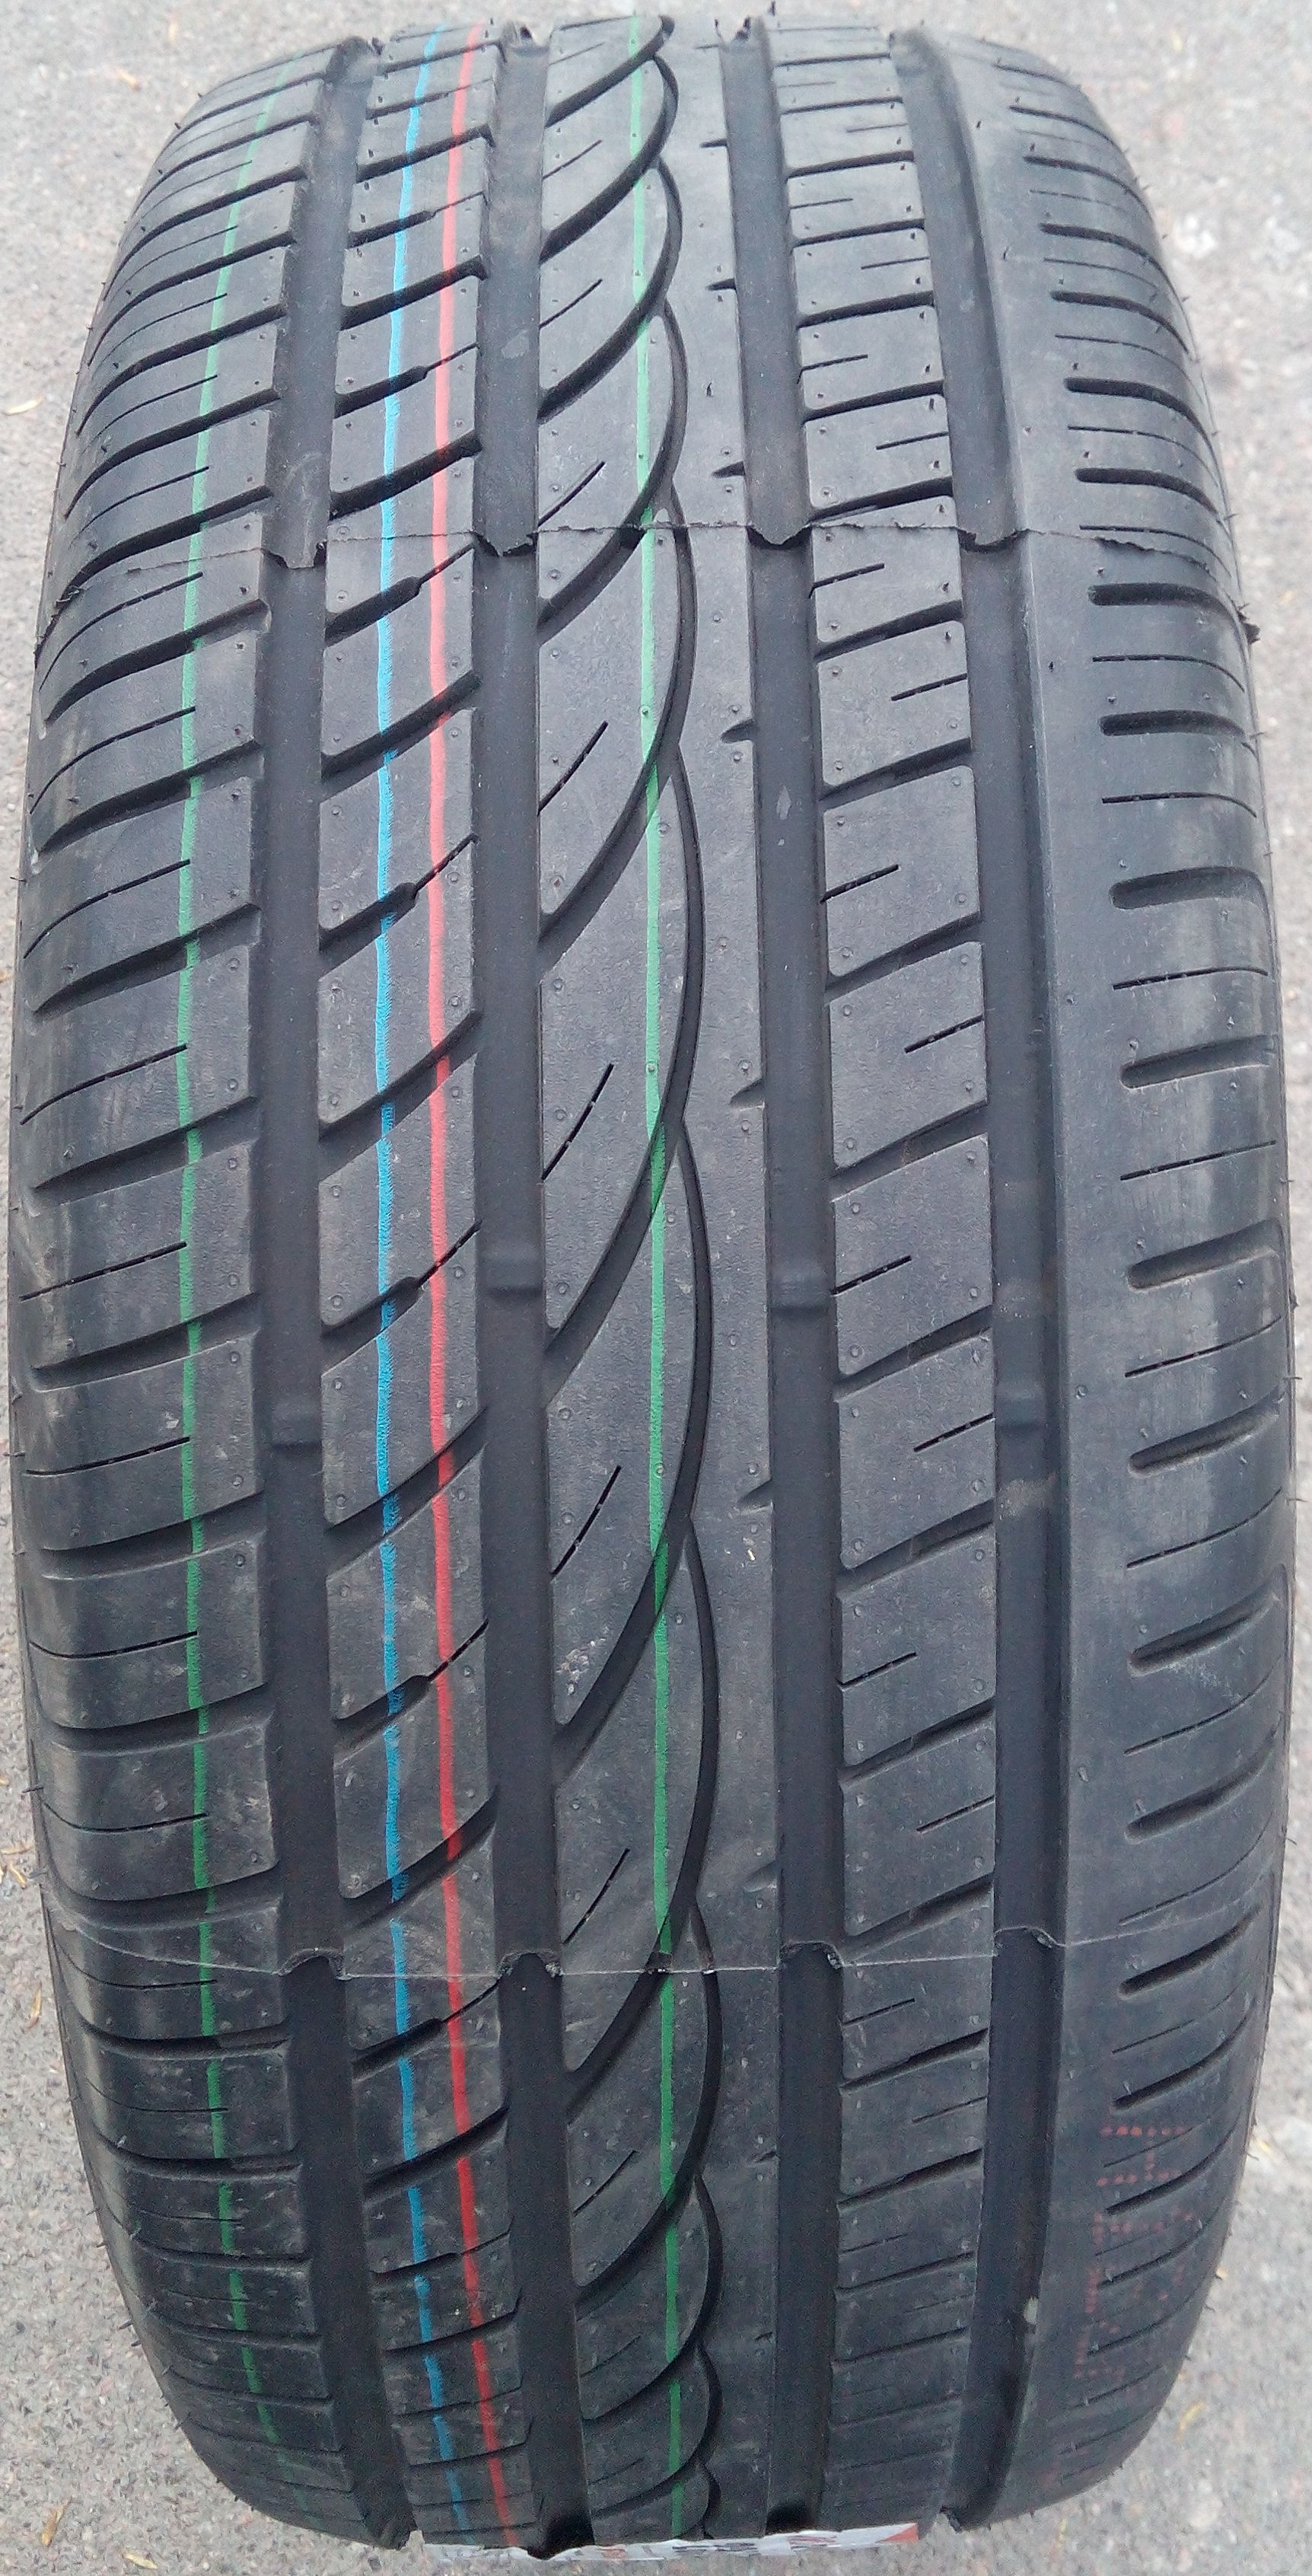 Kingrun-PHANTOM K3000 -245/45R20-103W X/L